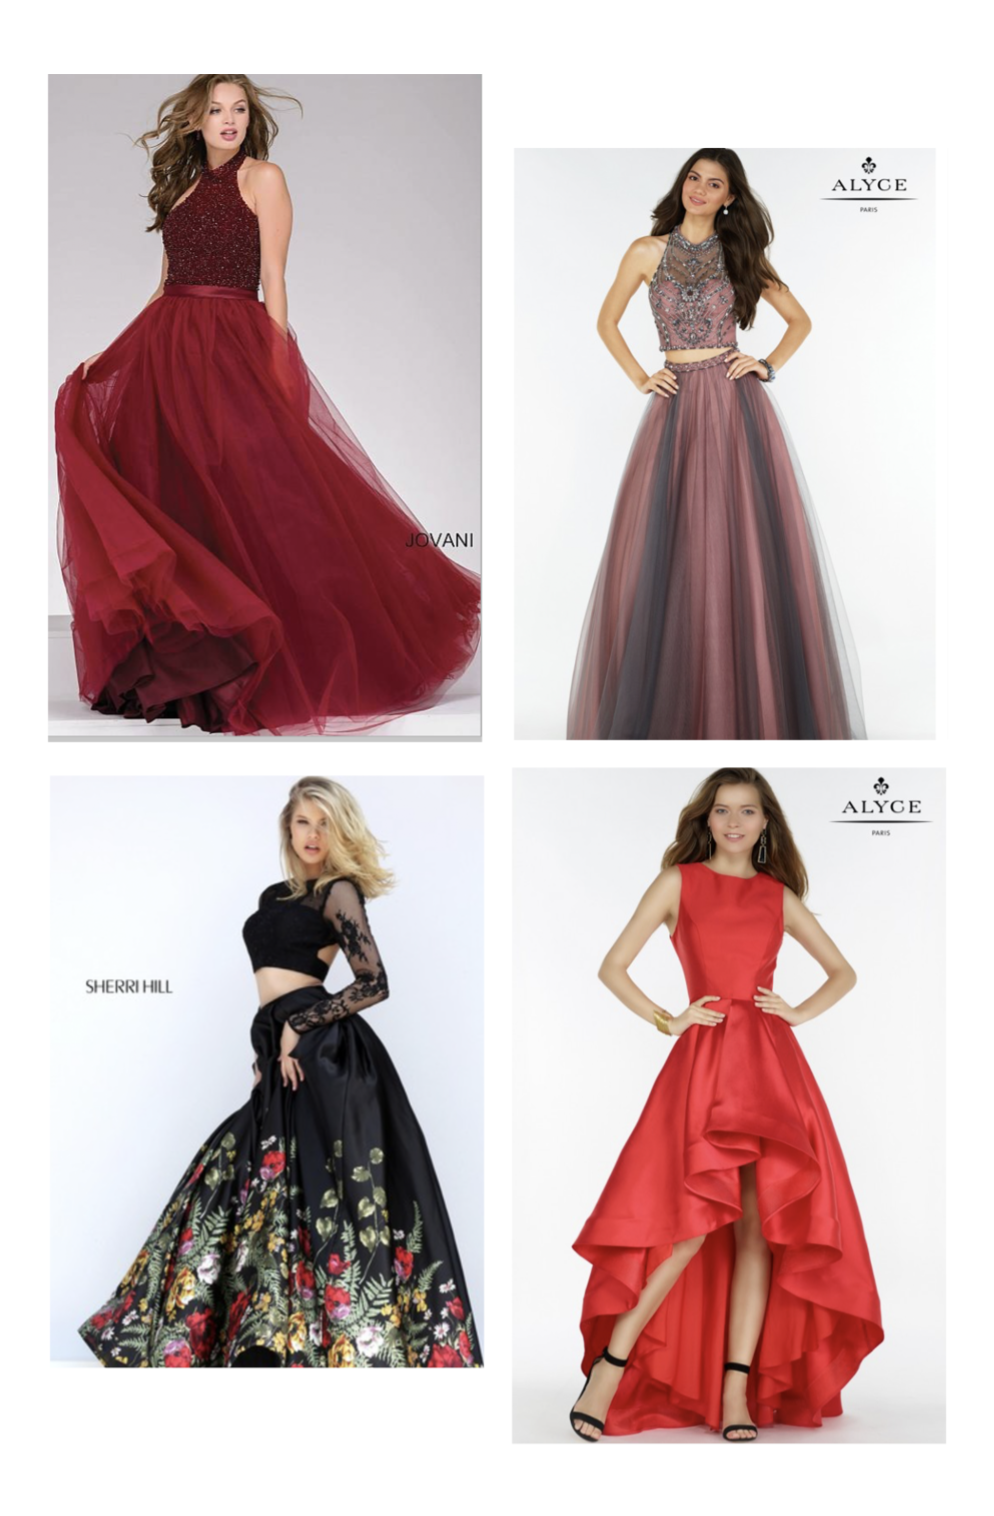 These styles by Jovani, Sherri Hill and Alyce are available at Our Shop.